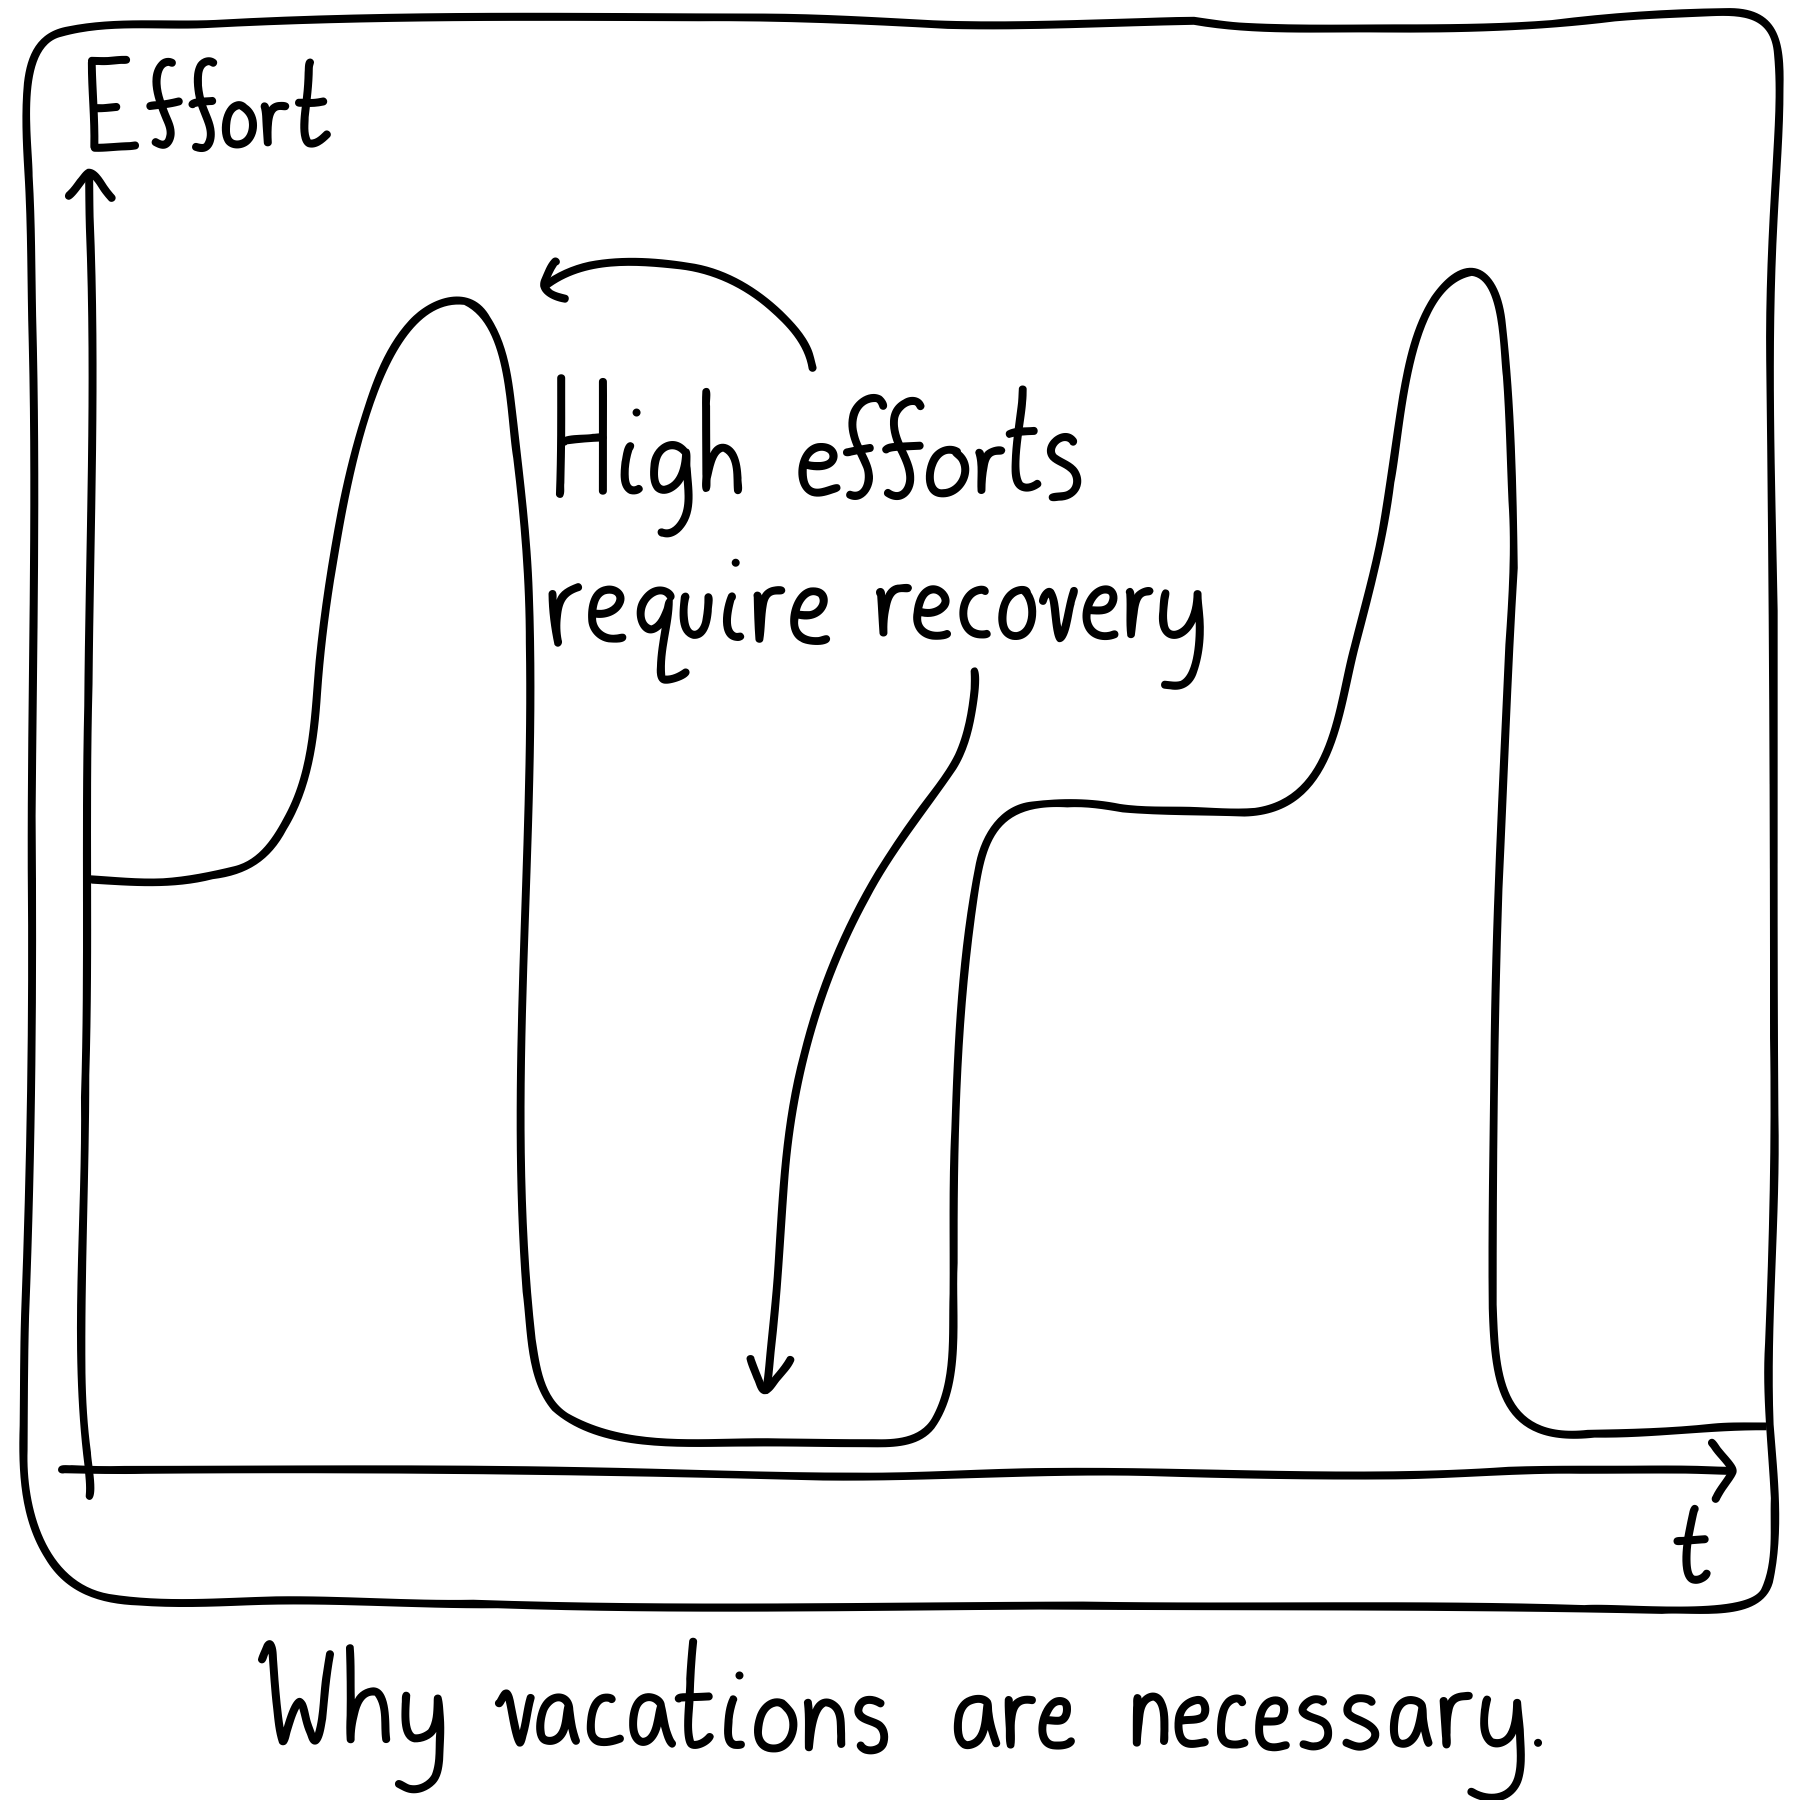 A plot of effort versus time. There are successive highs, followed by long lows, showing the necessity of recovery. Caption: Why vacations are necessary.